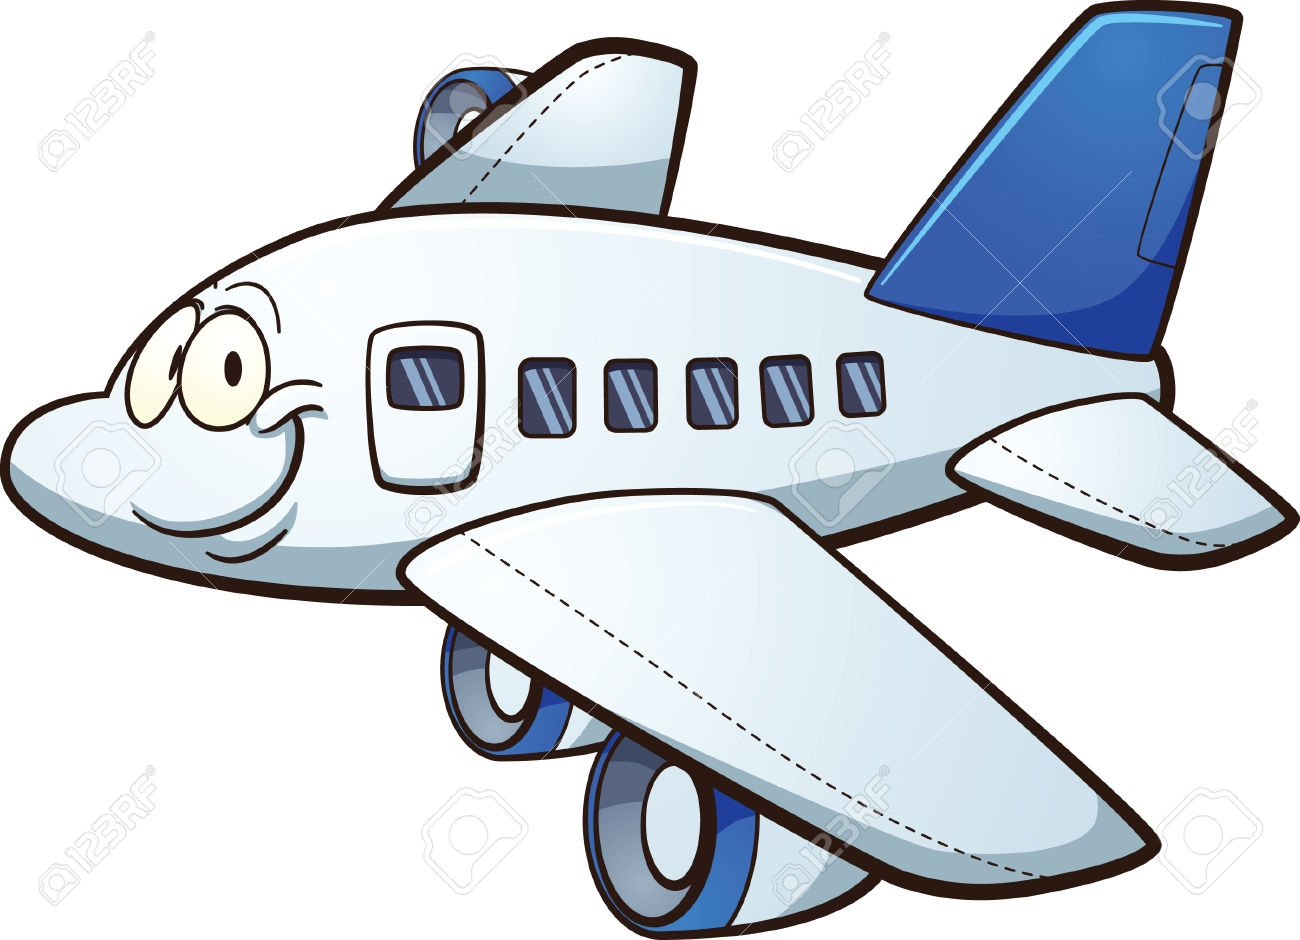 1300x940 Cartoon Airplane Clipart